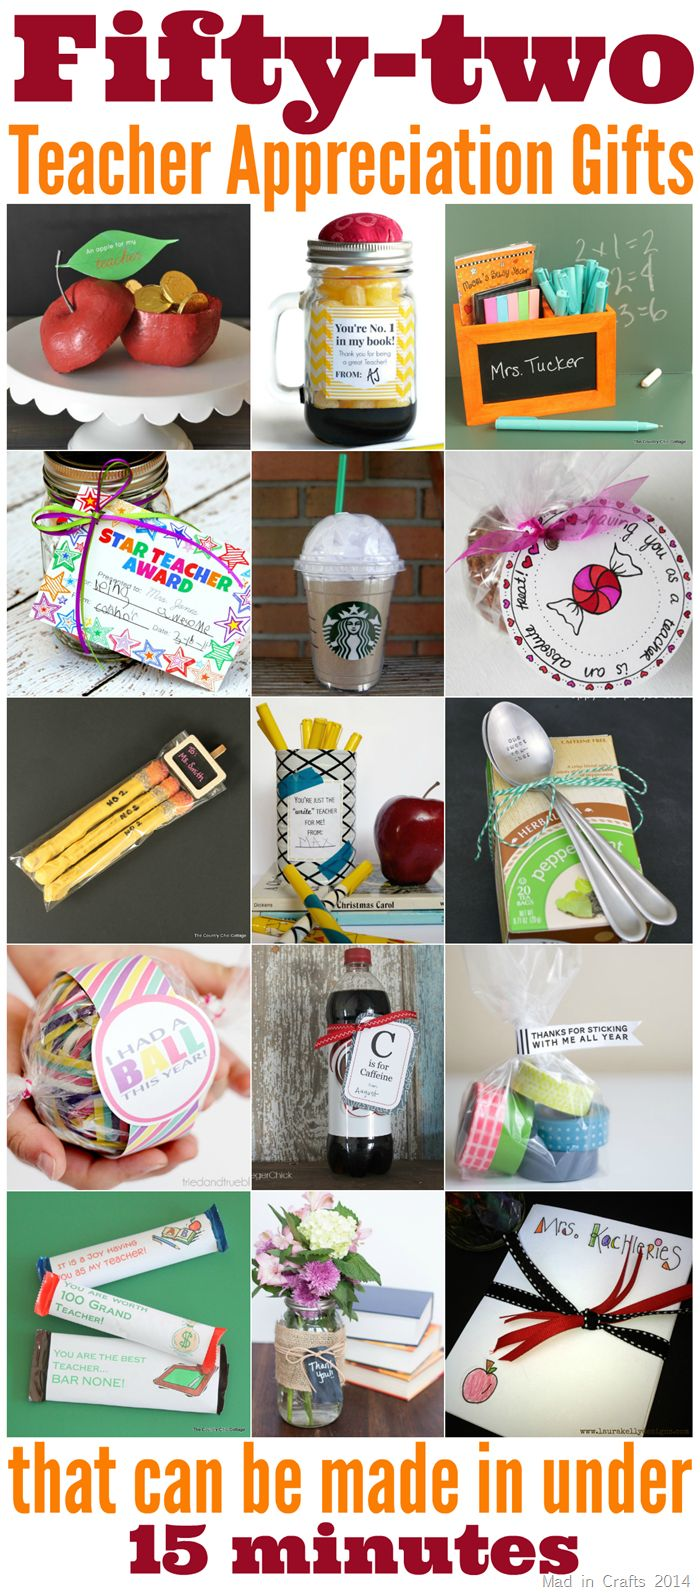 52 Teacher Appreciation Gifts (that can be made in under 15 minutes)